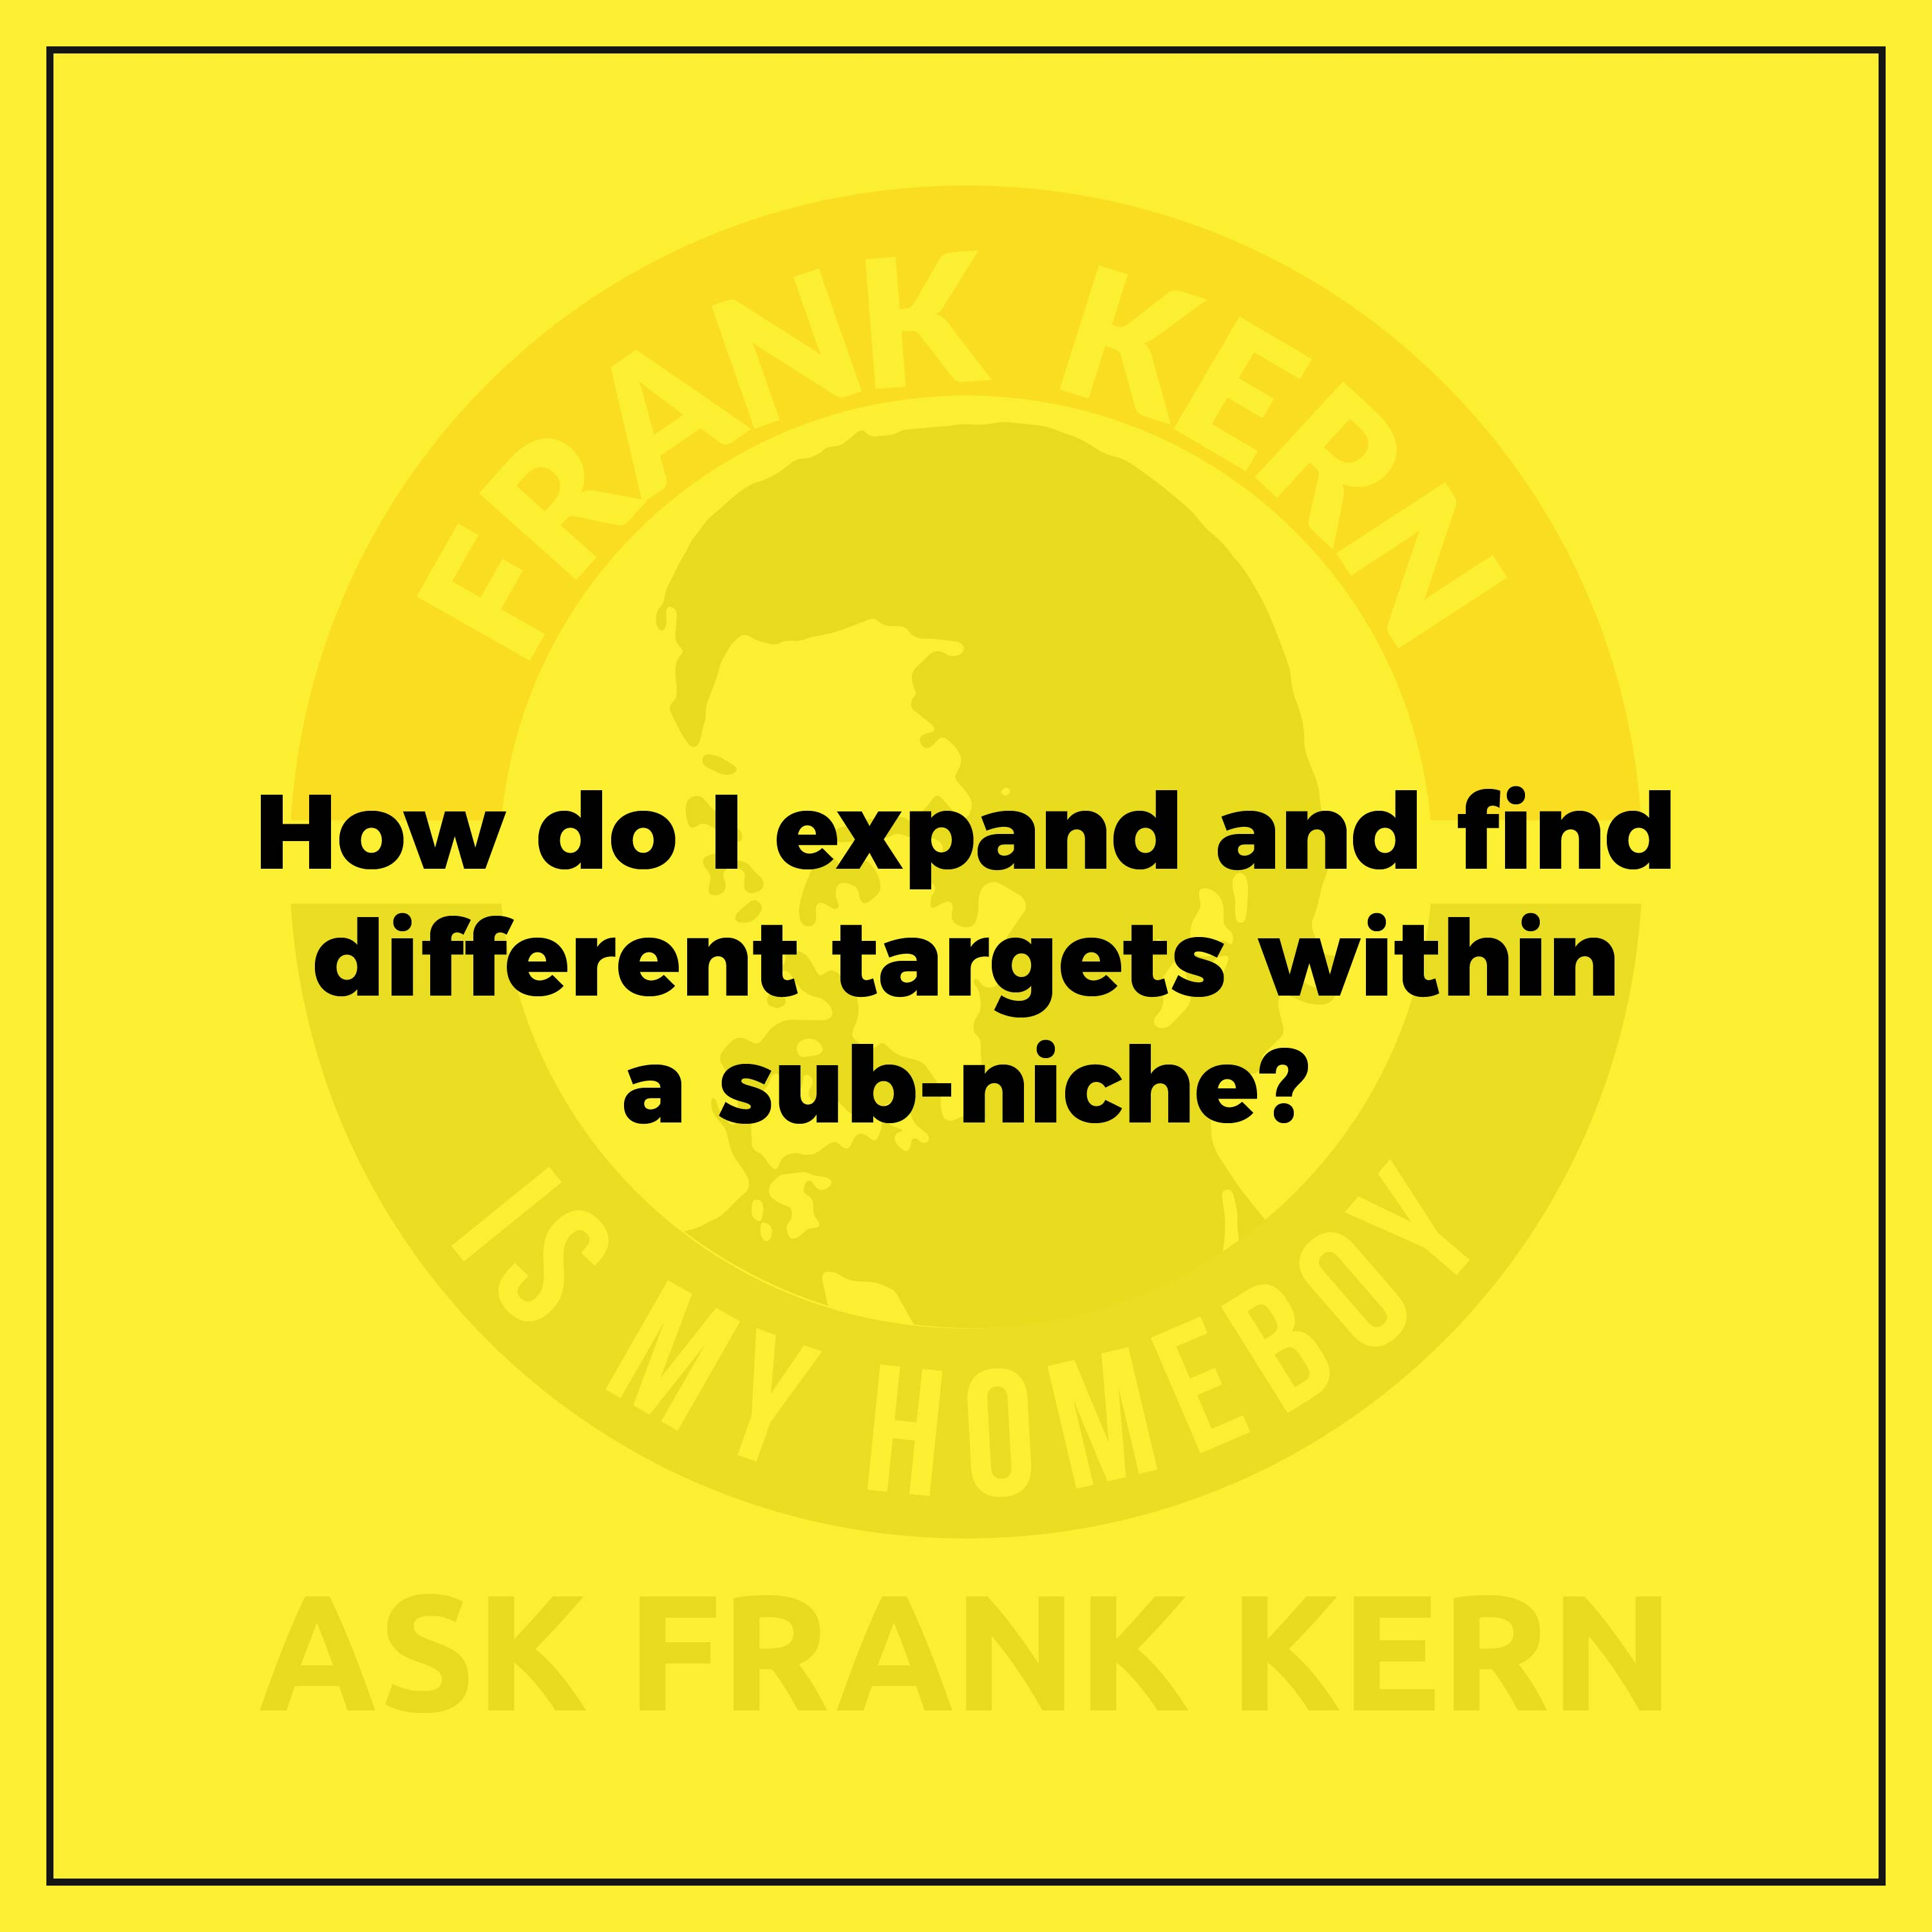 How do I expand and find different targets within a sub-niche?